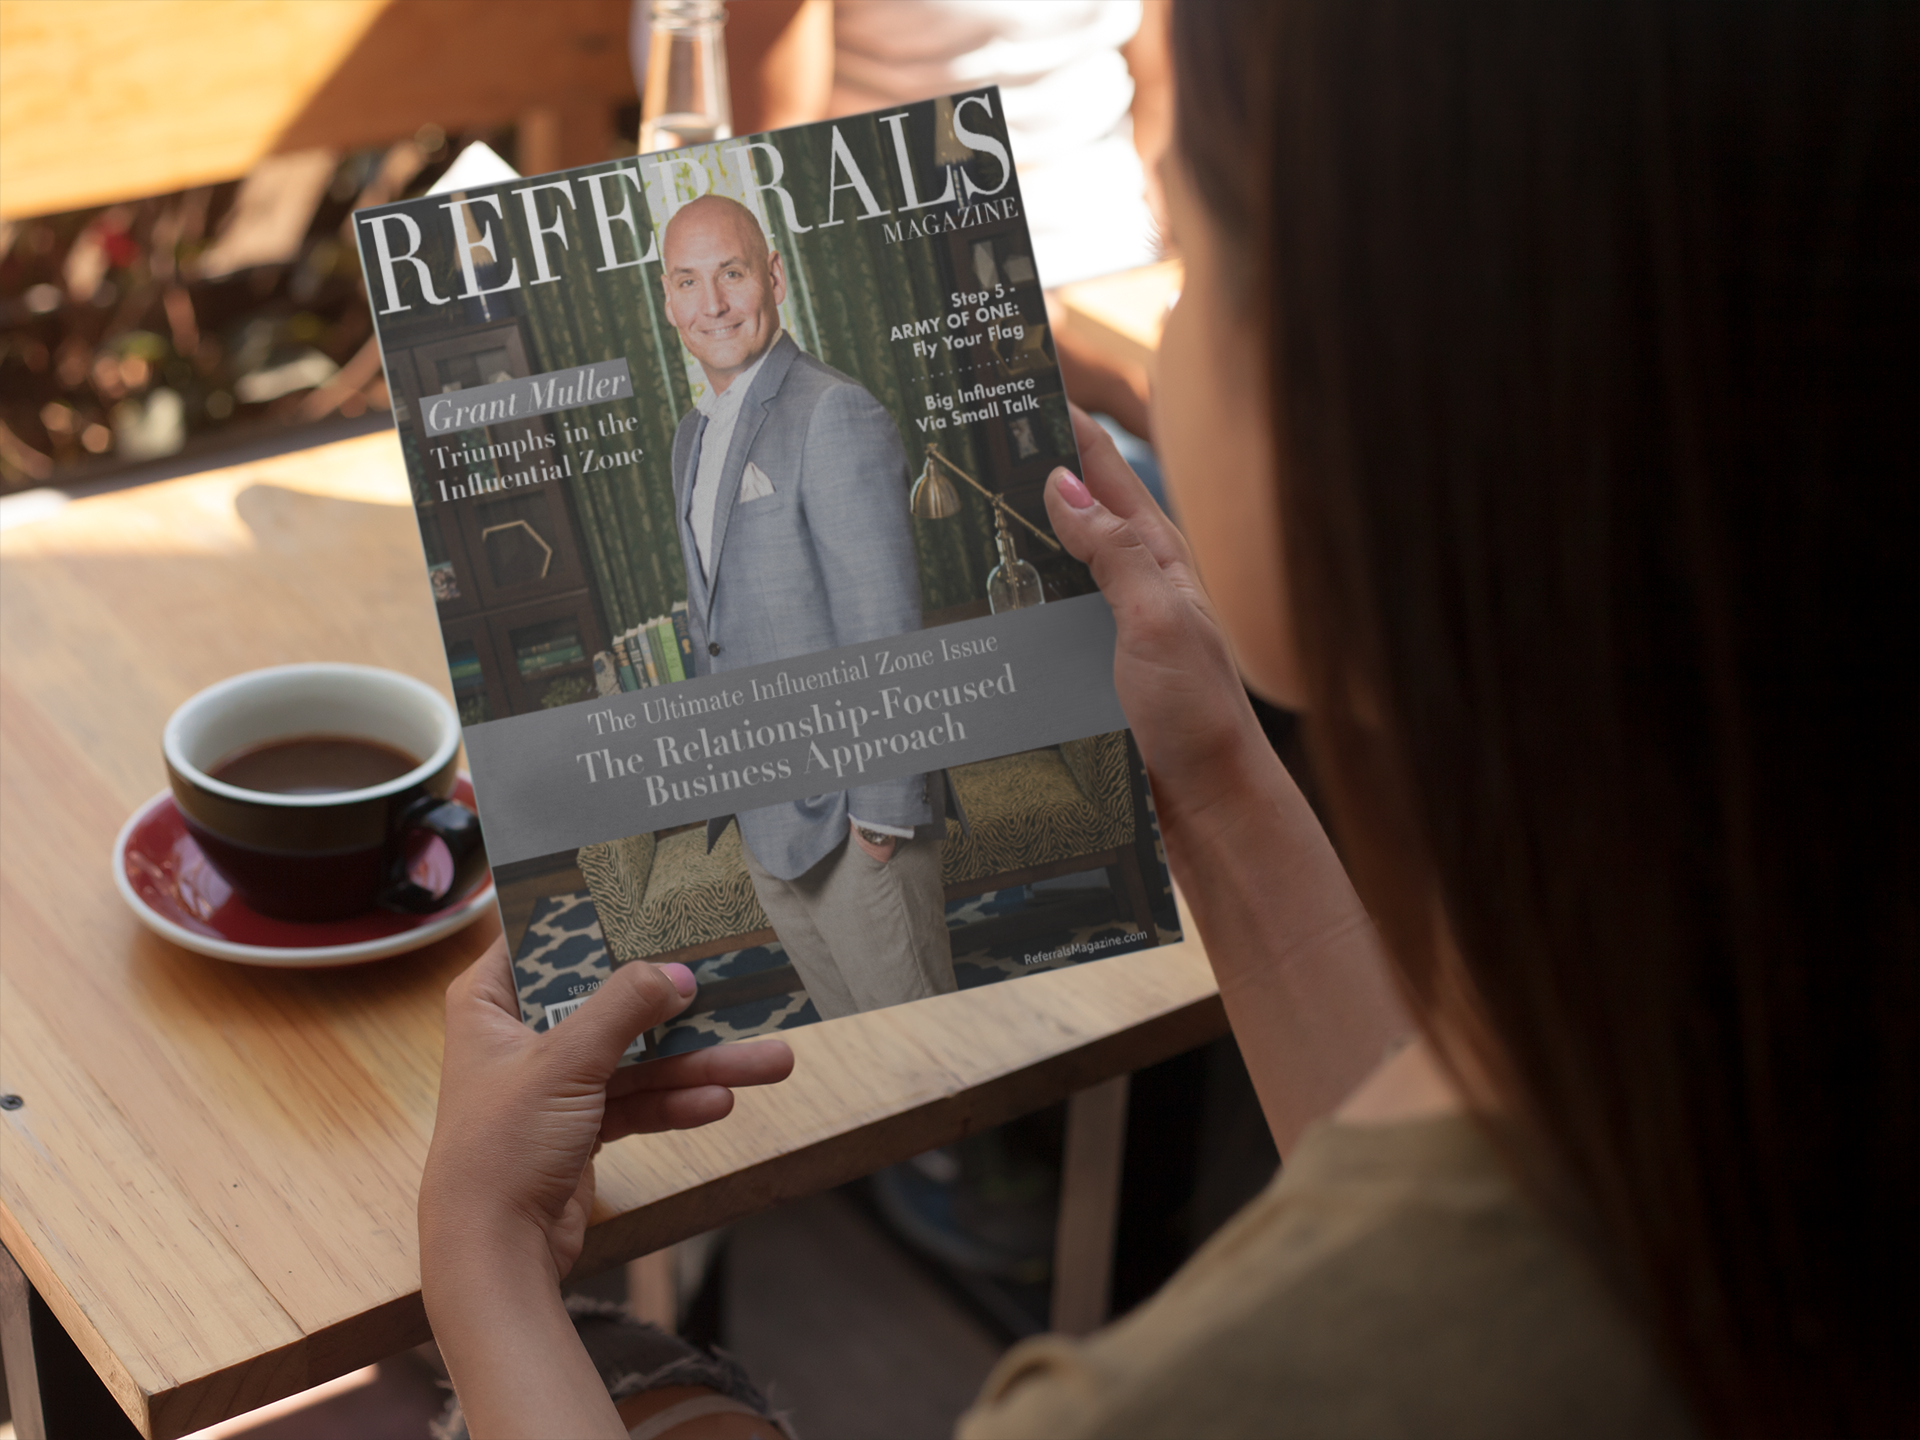 Referrals Magazine